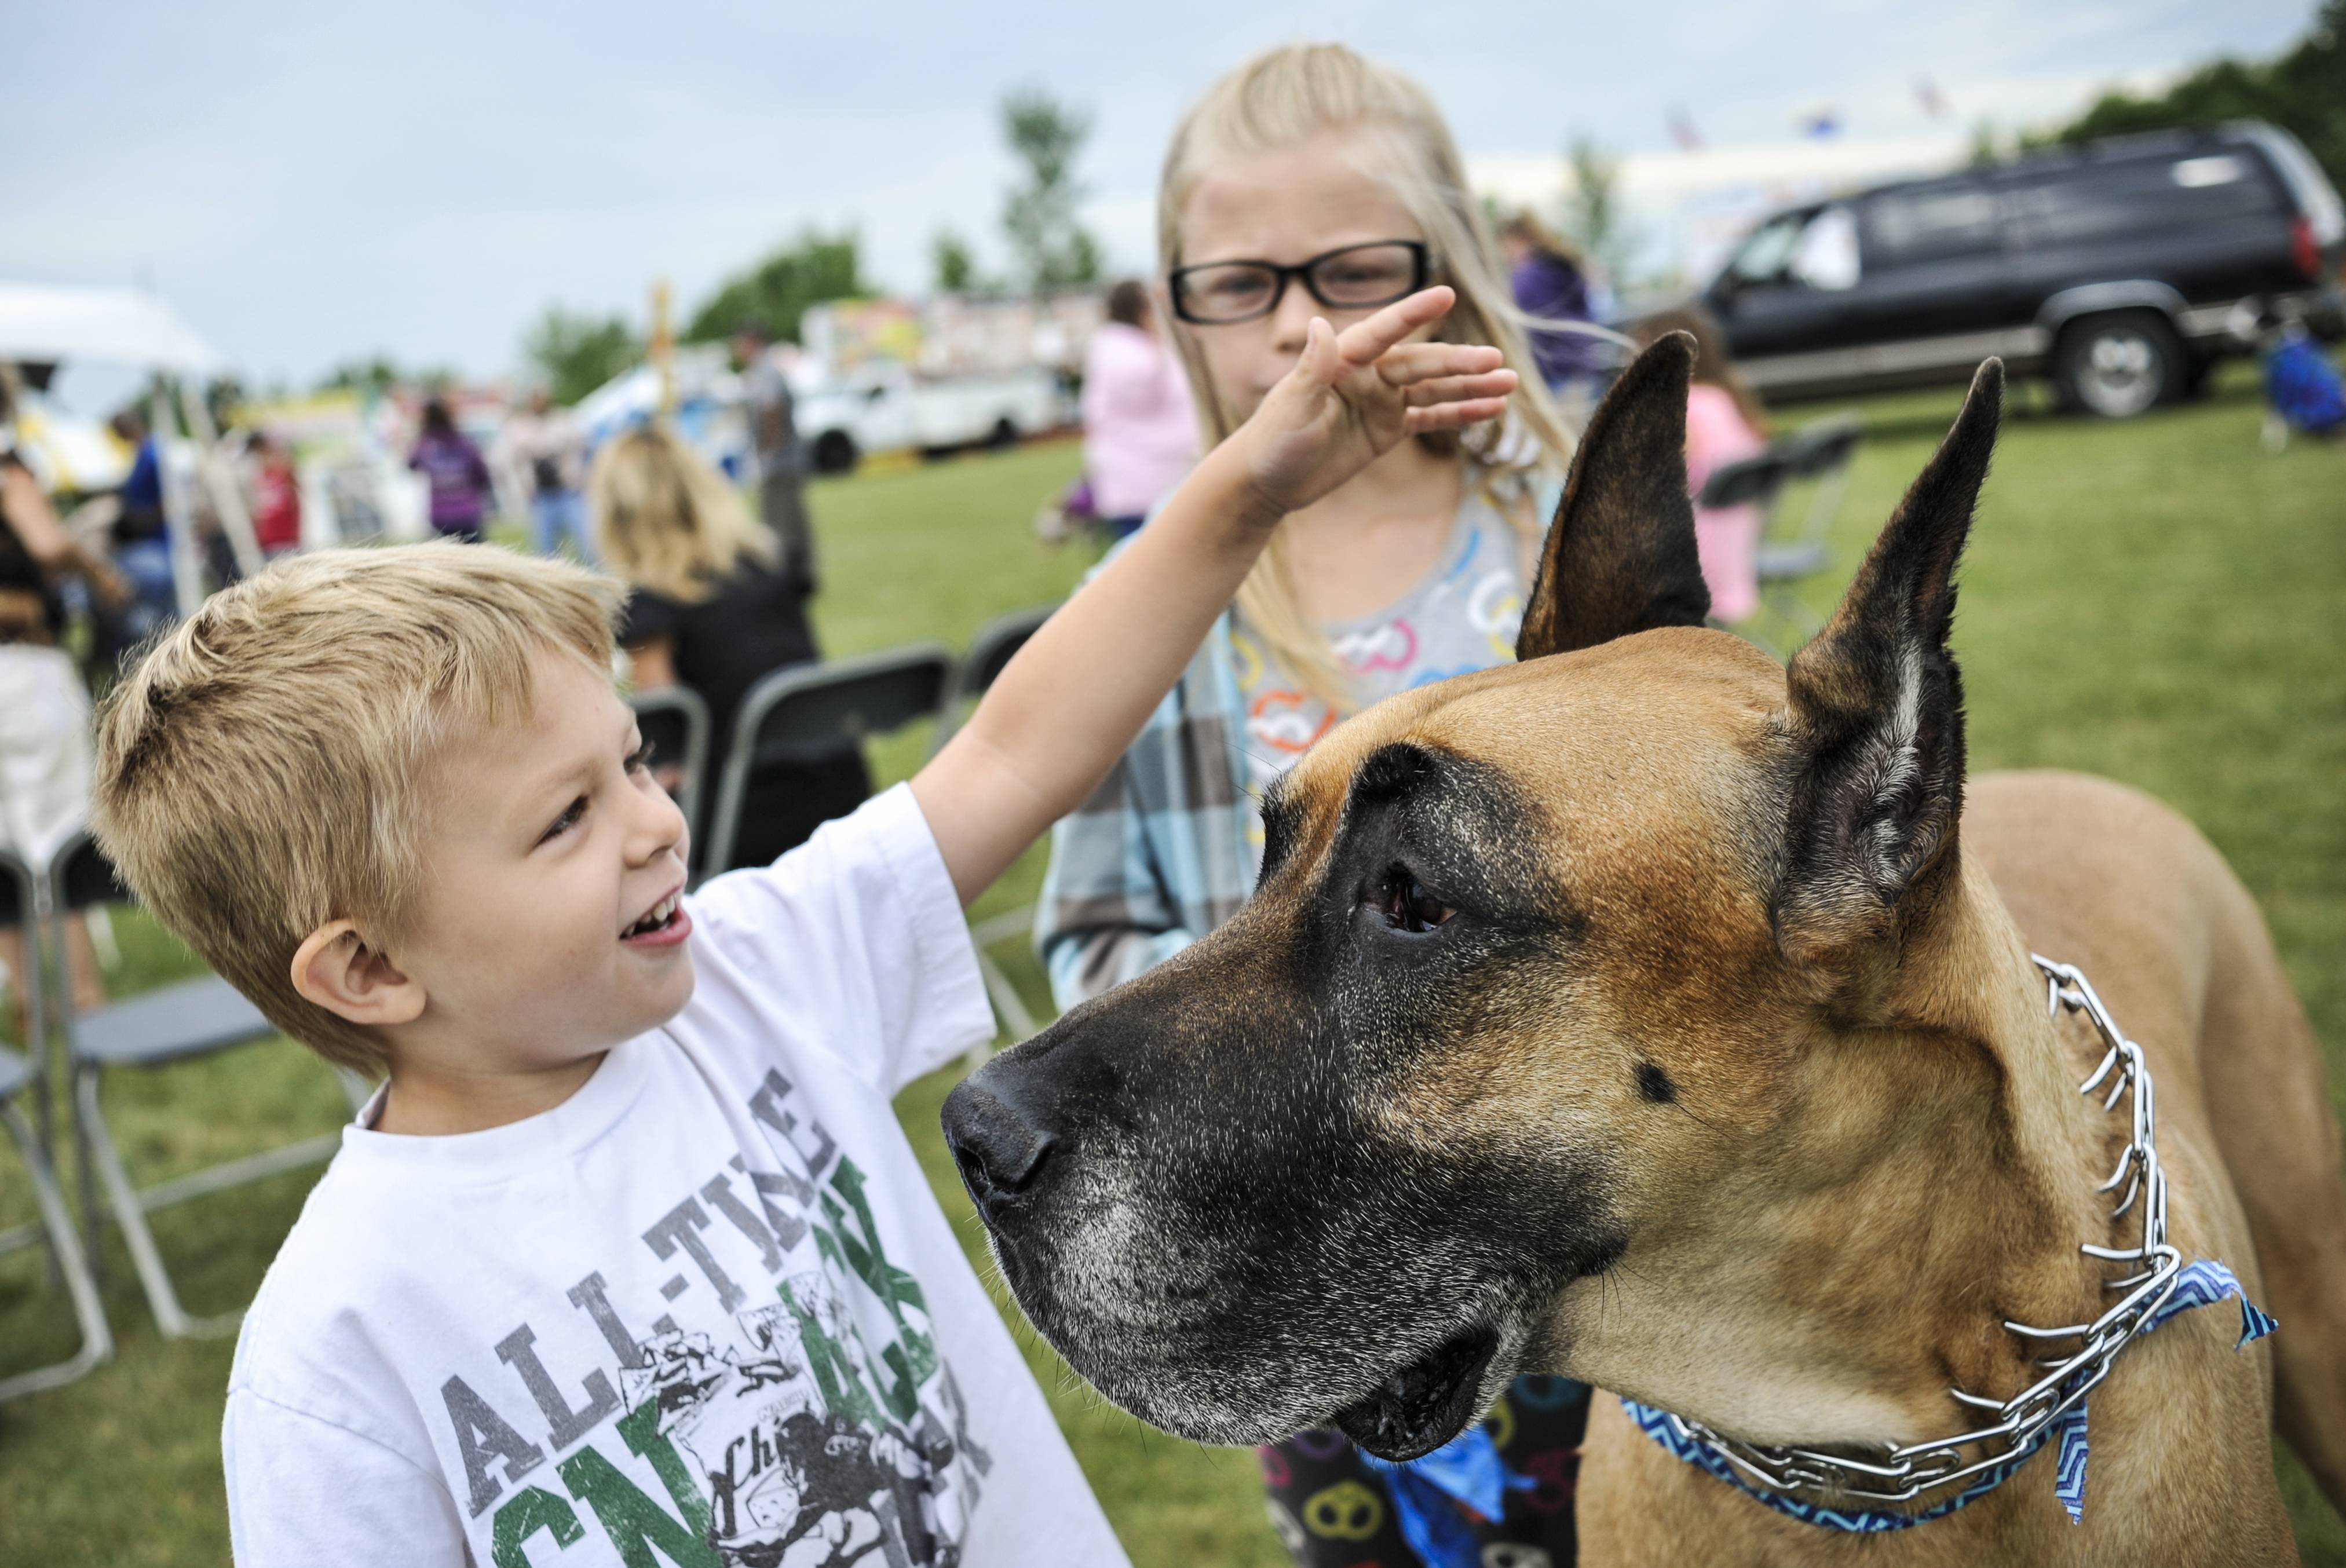 Deegan Forbes and his sister Kylie of Lake in the Hills get their aunt's Great Dane, Logan, ready Friday before the dog and cat show at the Algonquin Founders' Days festival in Algonquin Lakes Park. Logan won in the biggest-dog category.